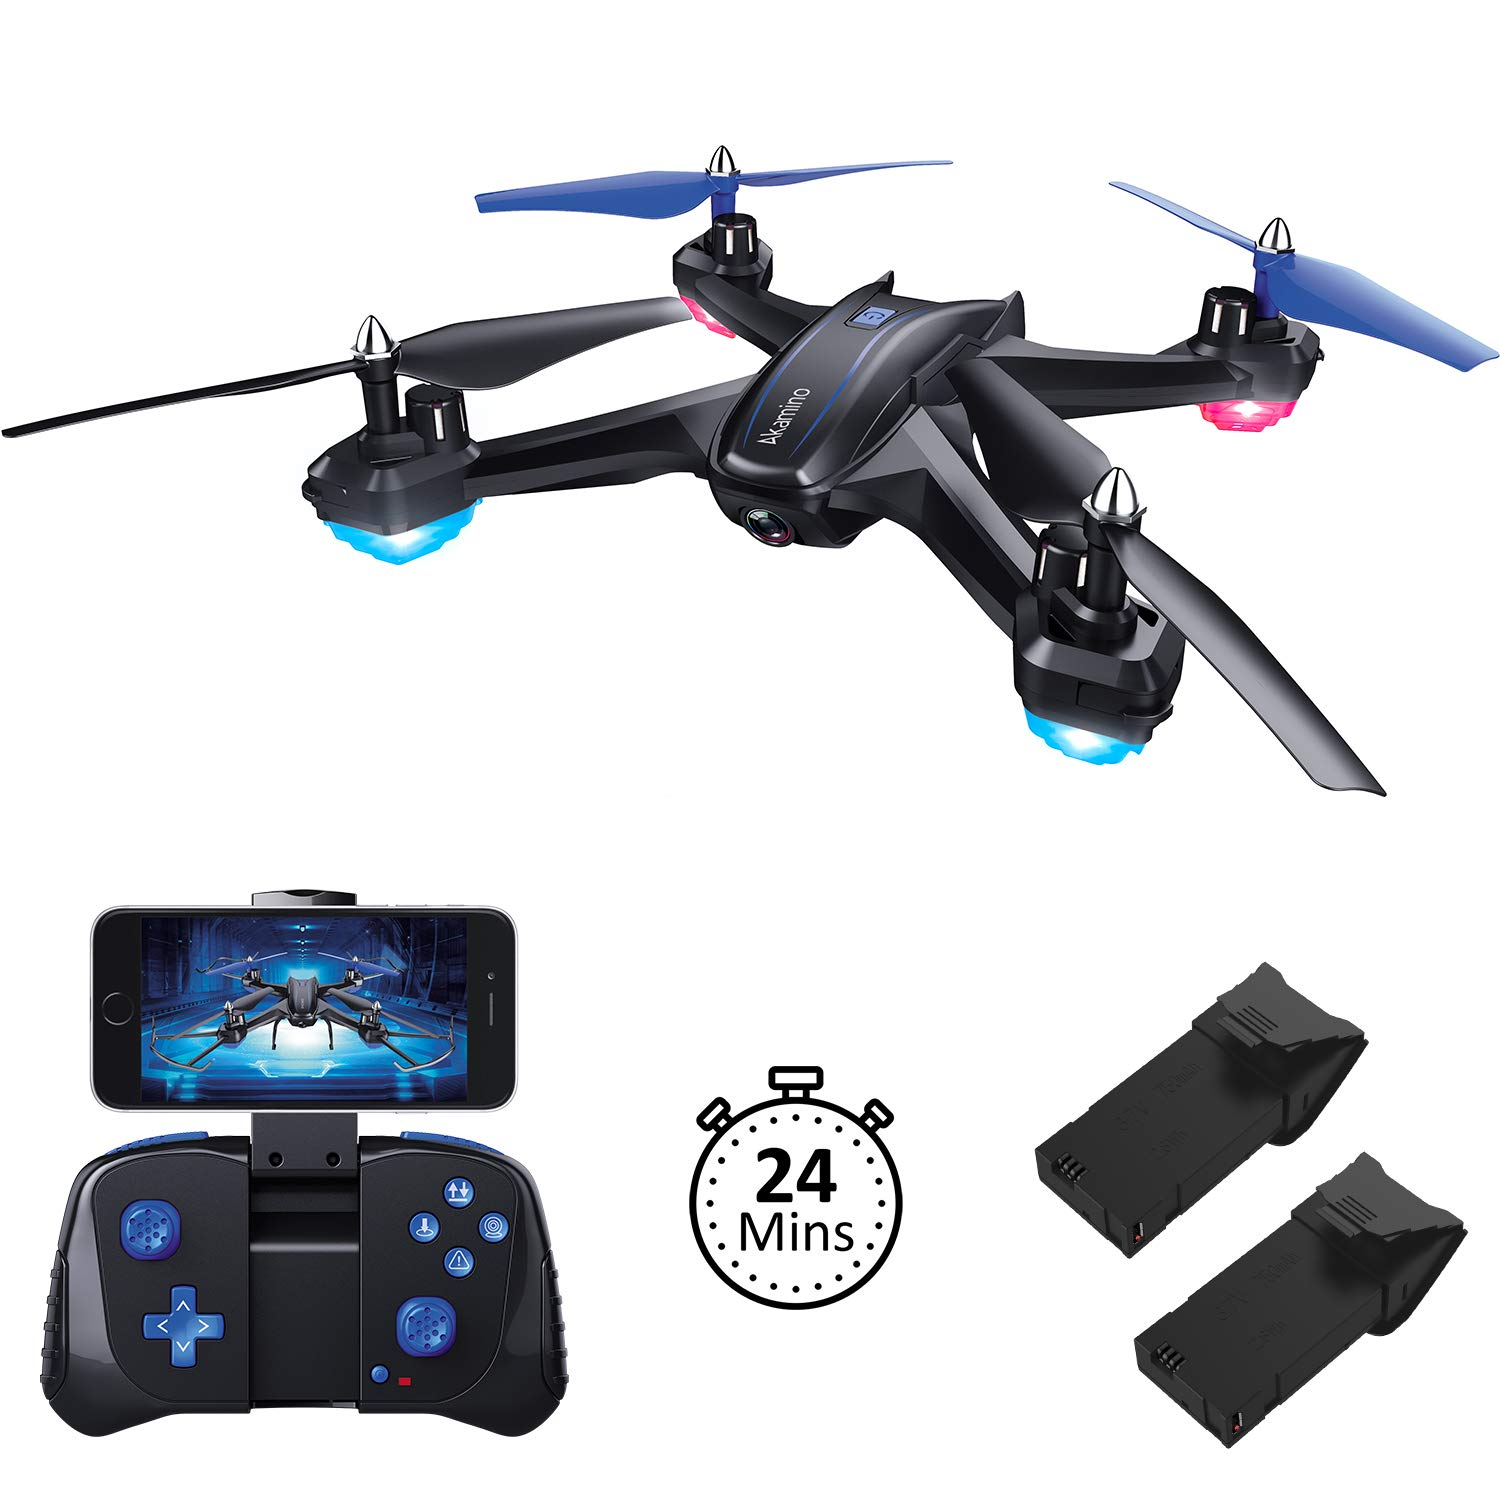 Akamino S6 WiFi FPV Drone, RC Quadcopter with 120° FOV 720P HD Camera for Adult, Portable Aircraft Toy for Beginners with Trajectory Flight, Gravity Sensor, 3D Flip, APP Control by Akamino